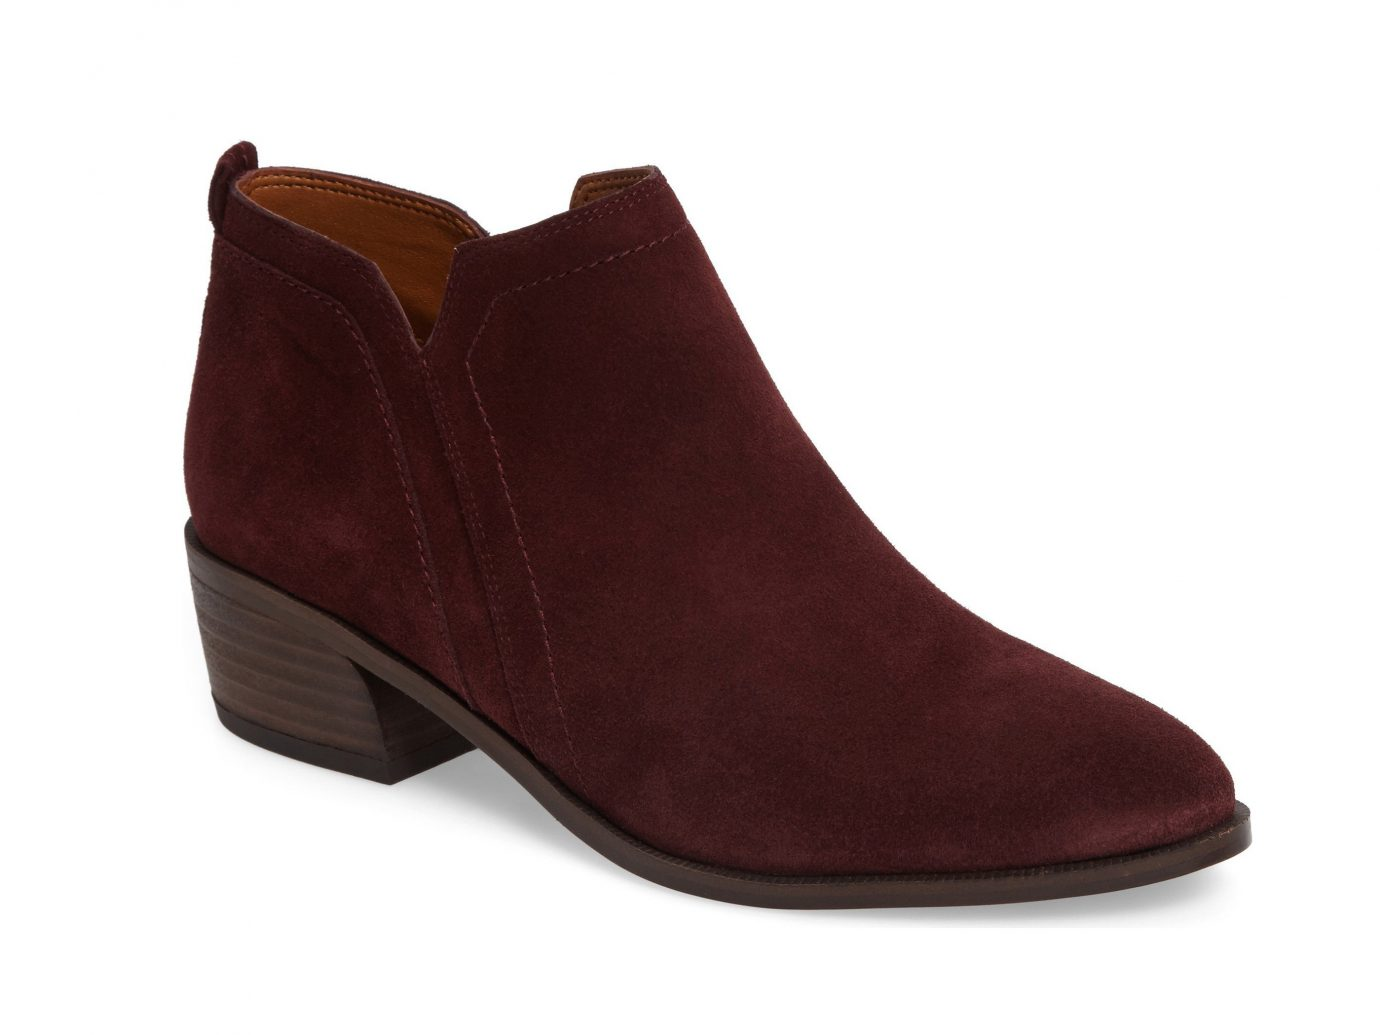 Packing Tips shopping Style + Design Travel Shop clothing footwear brown suede boot shoe leather high heeled footwear product basic pump shoes feet